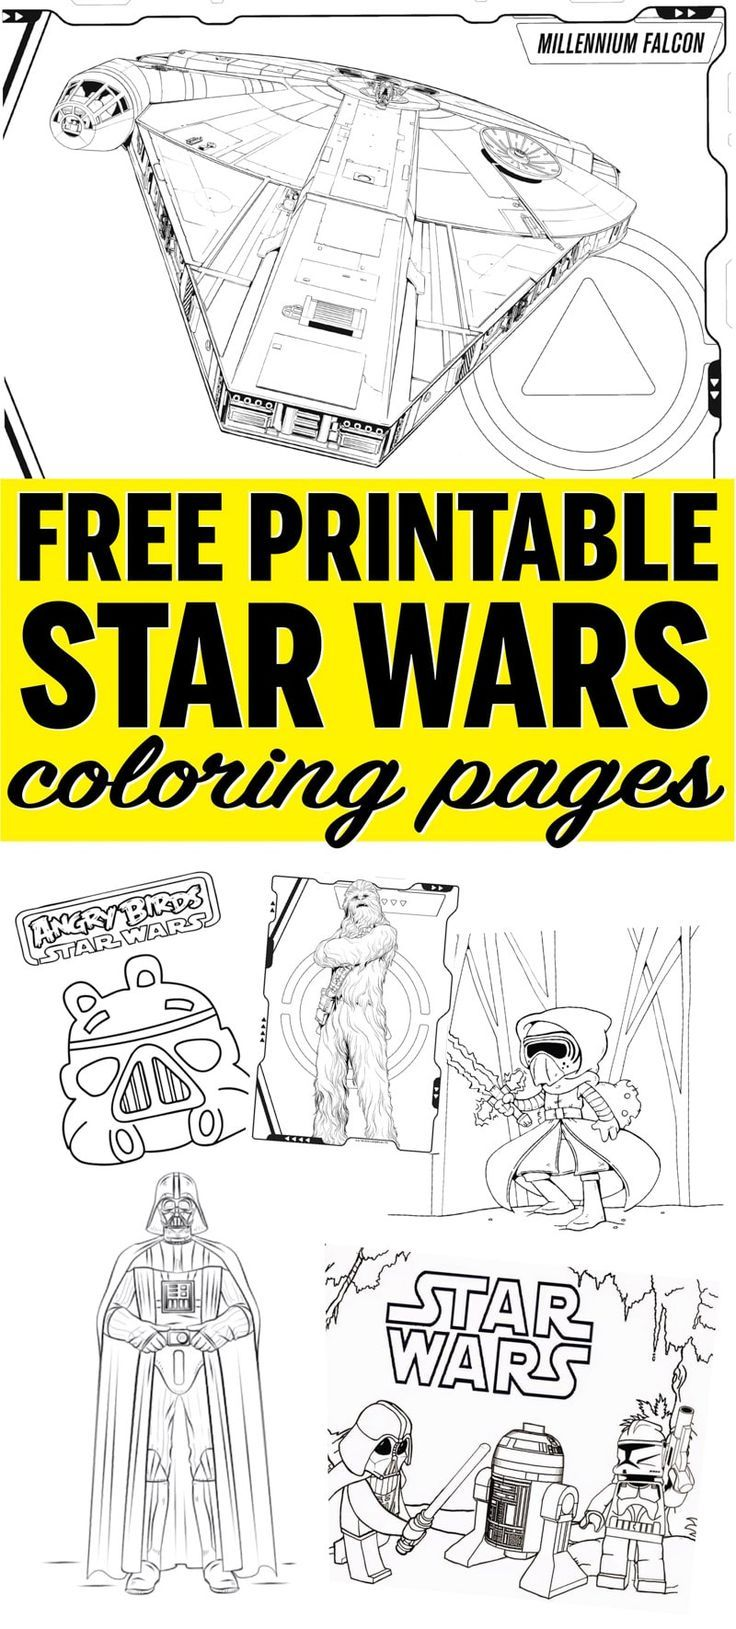 Free Printable Star Wars Coloring Pages Star Wars Printables Star Wars Coloring Sheet Star Wars Colors